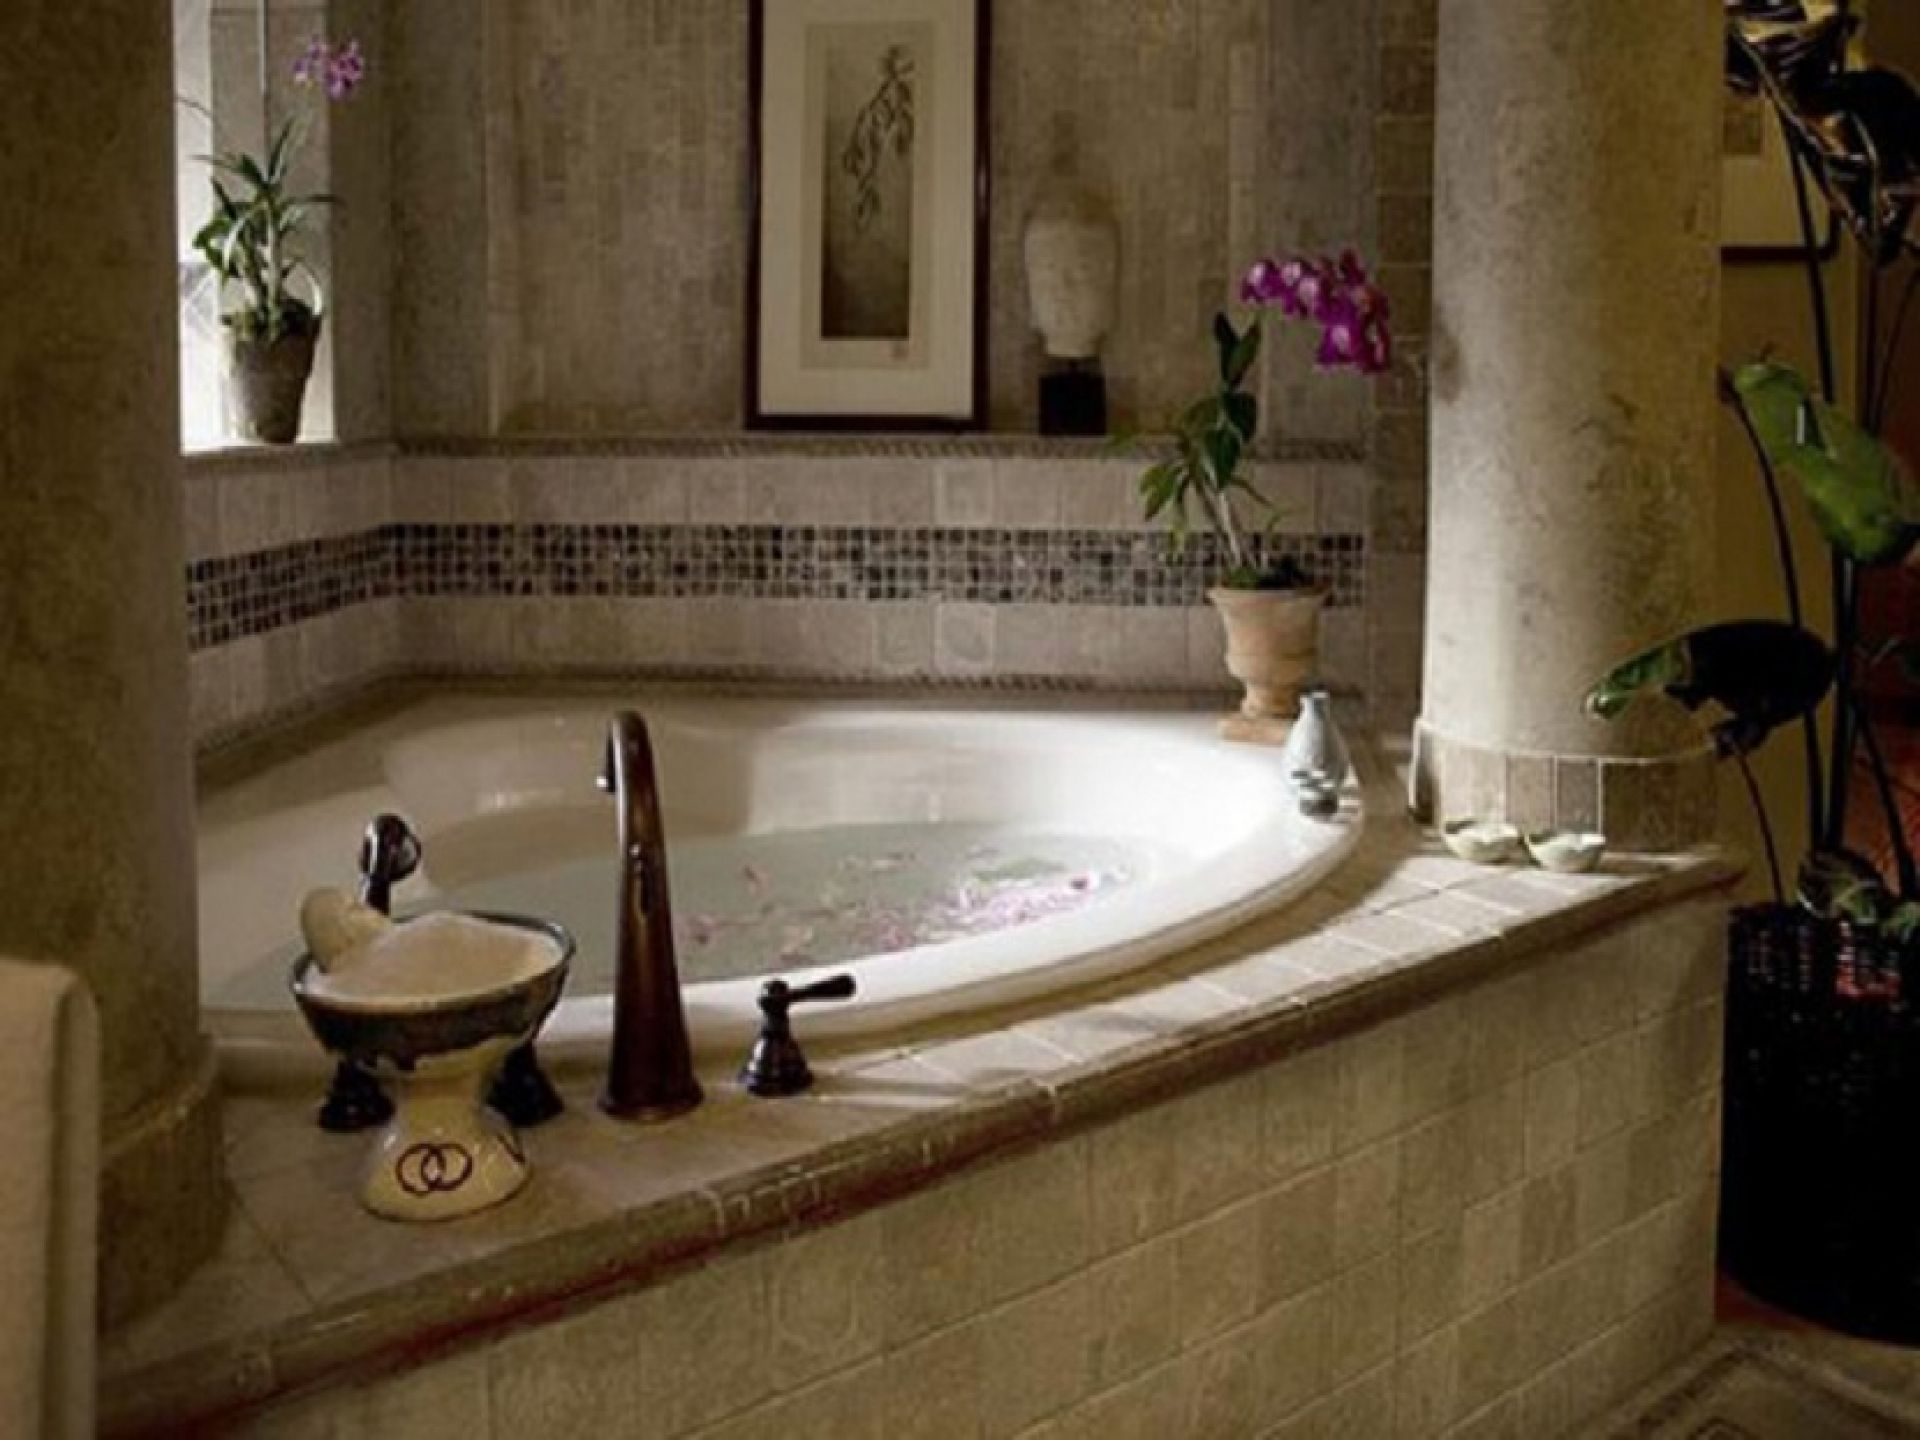 Garden Bathtub Decorating Ideas decorating ideas for bathrooms with garden tubs Bathroom Romantic Candice Olson Jacuzzi Corner Bathtub Designs With Bronze Curve Faucet And White